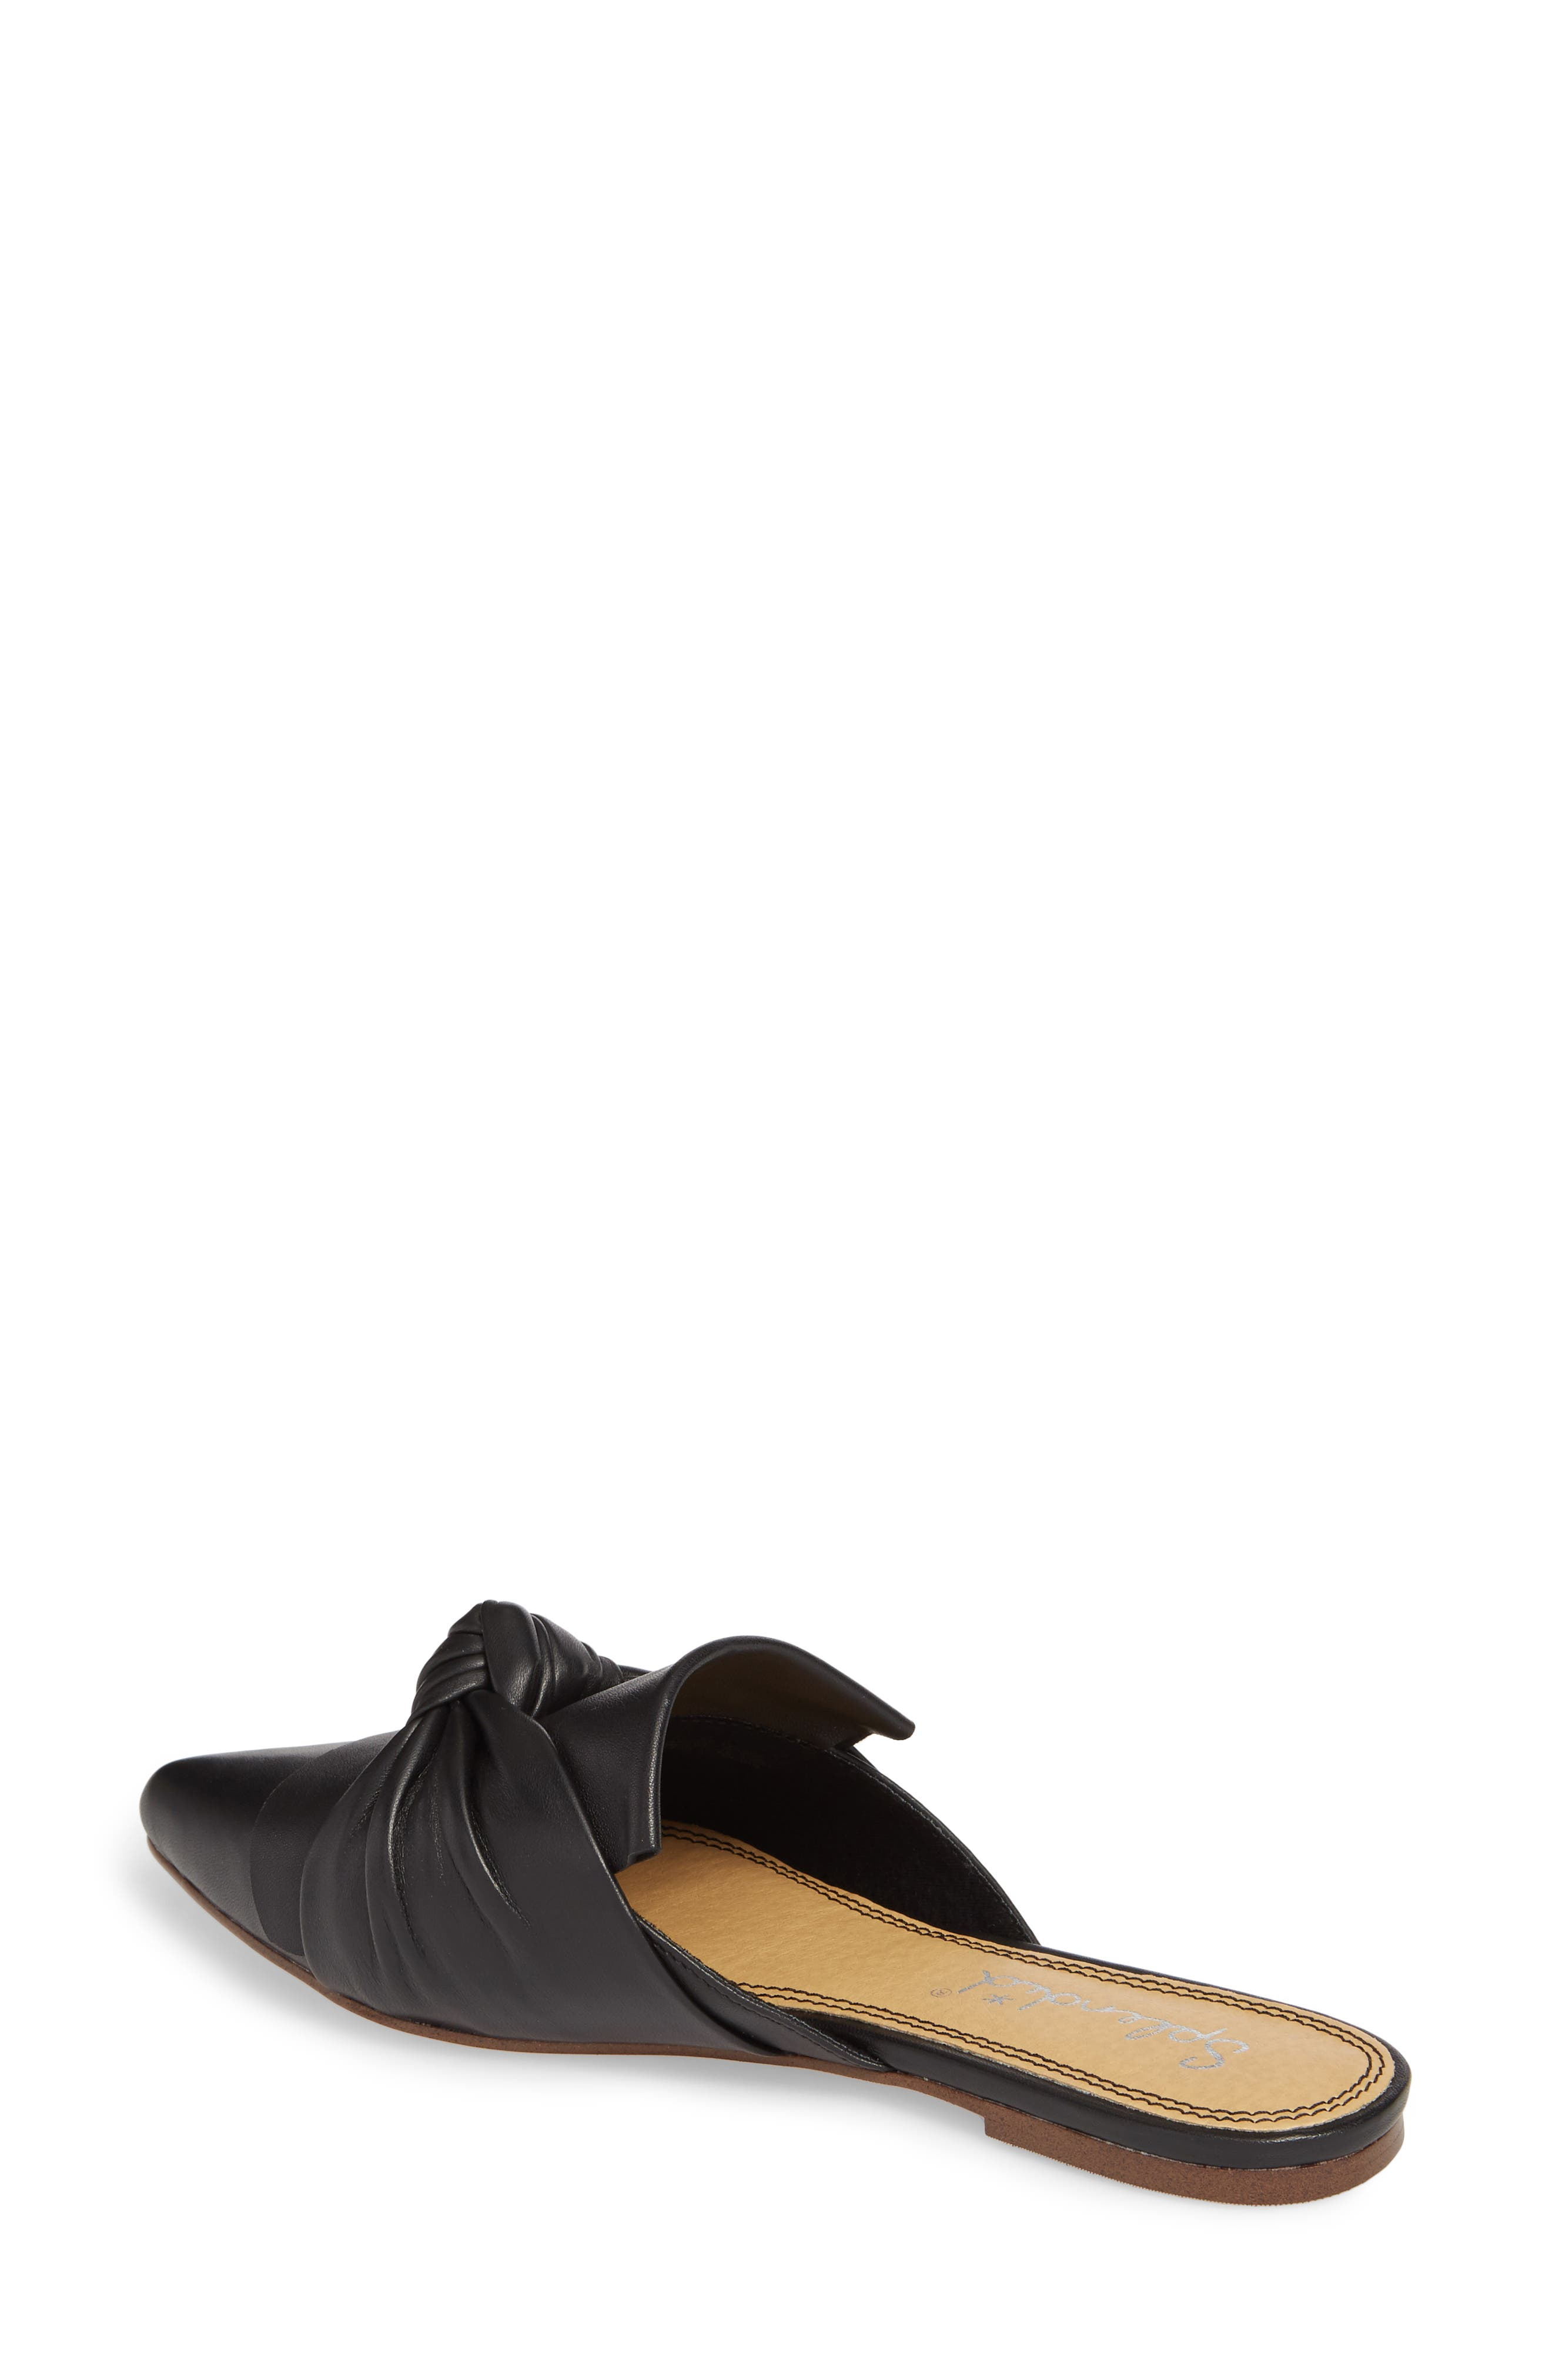 Bassett Knotted Pointy Toe Mule,                             Alternate thumbnail 2, color,                             002